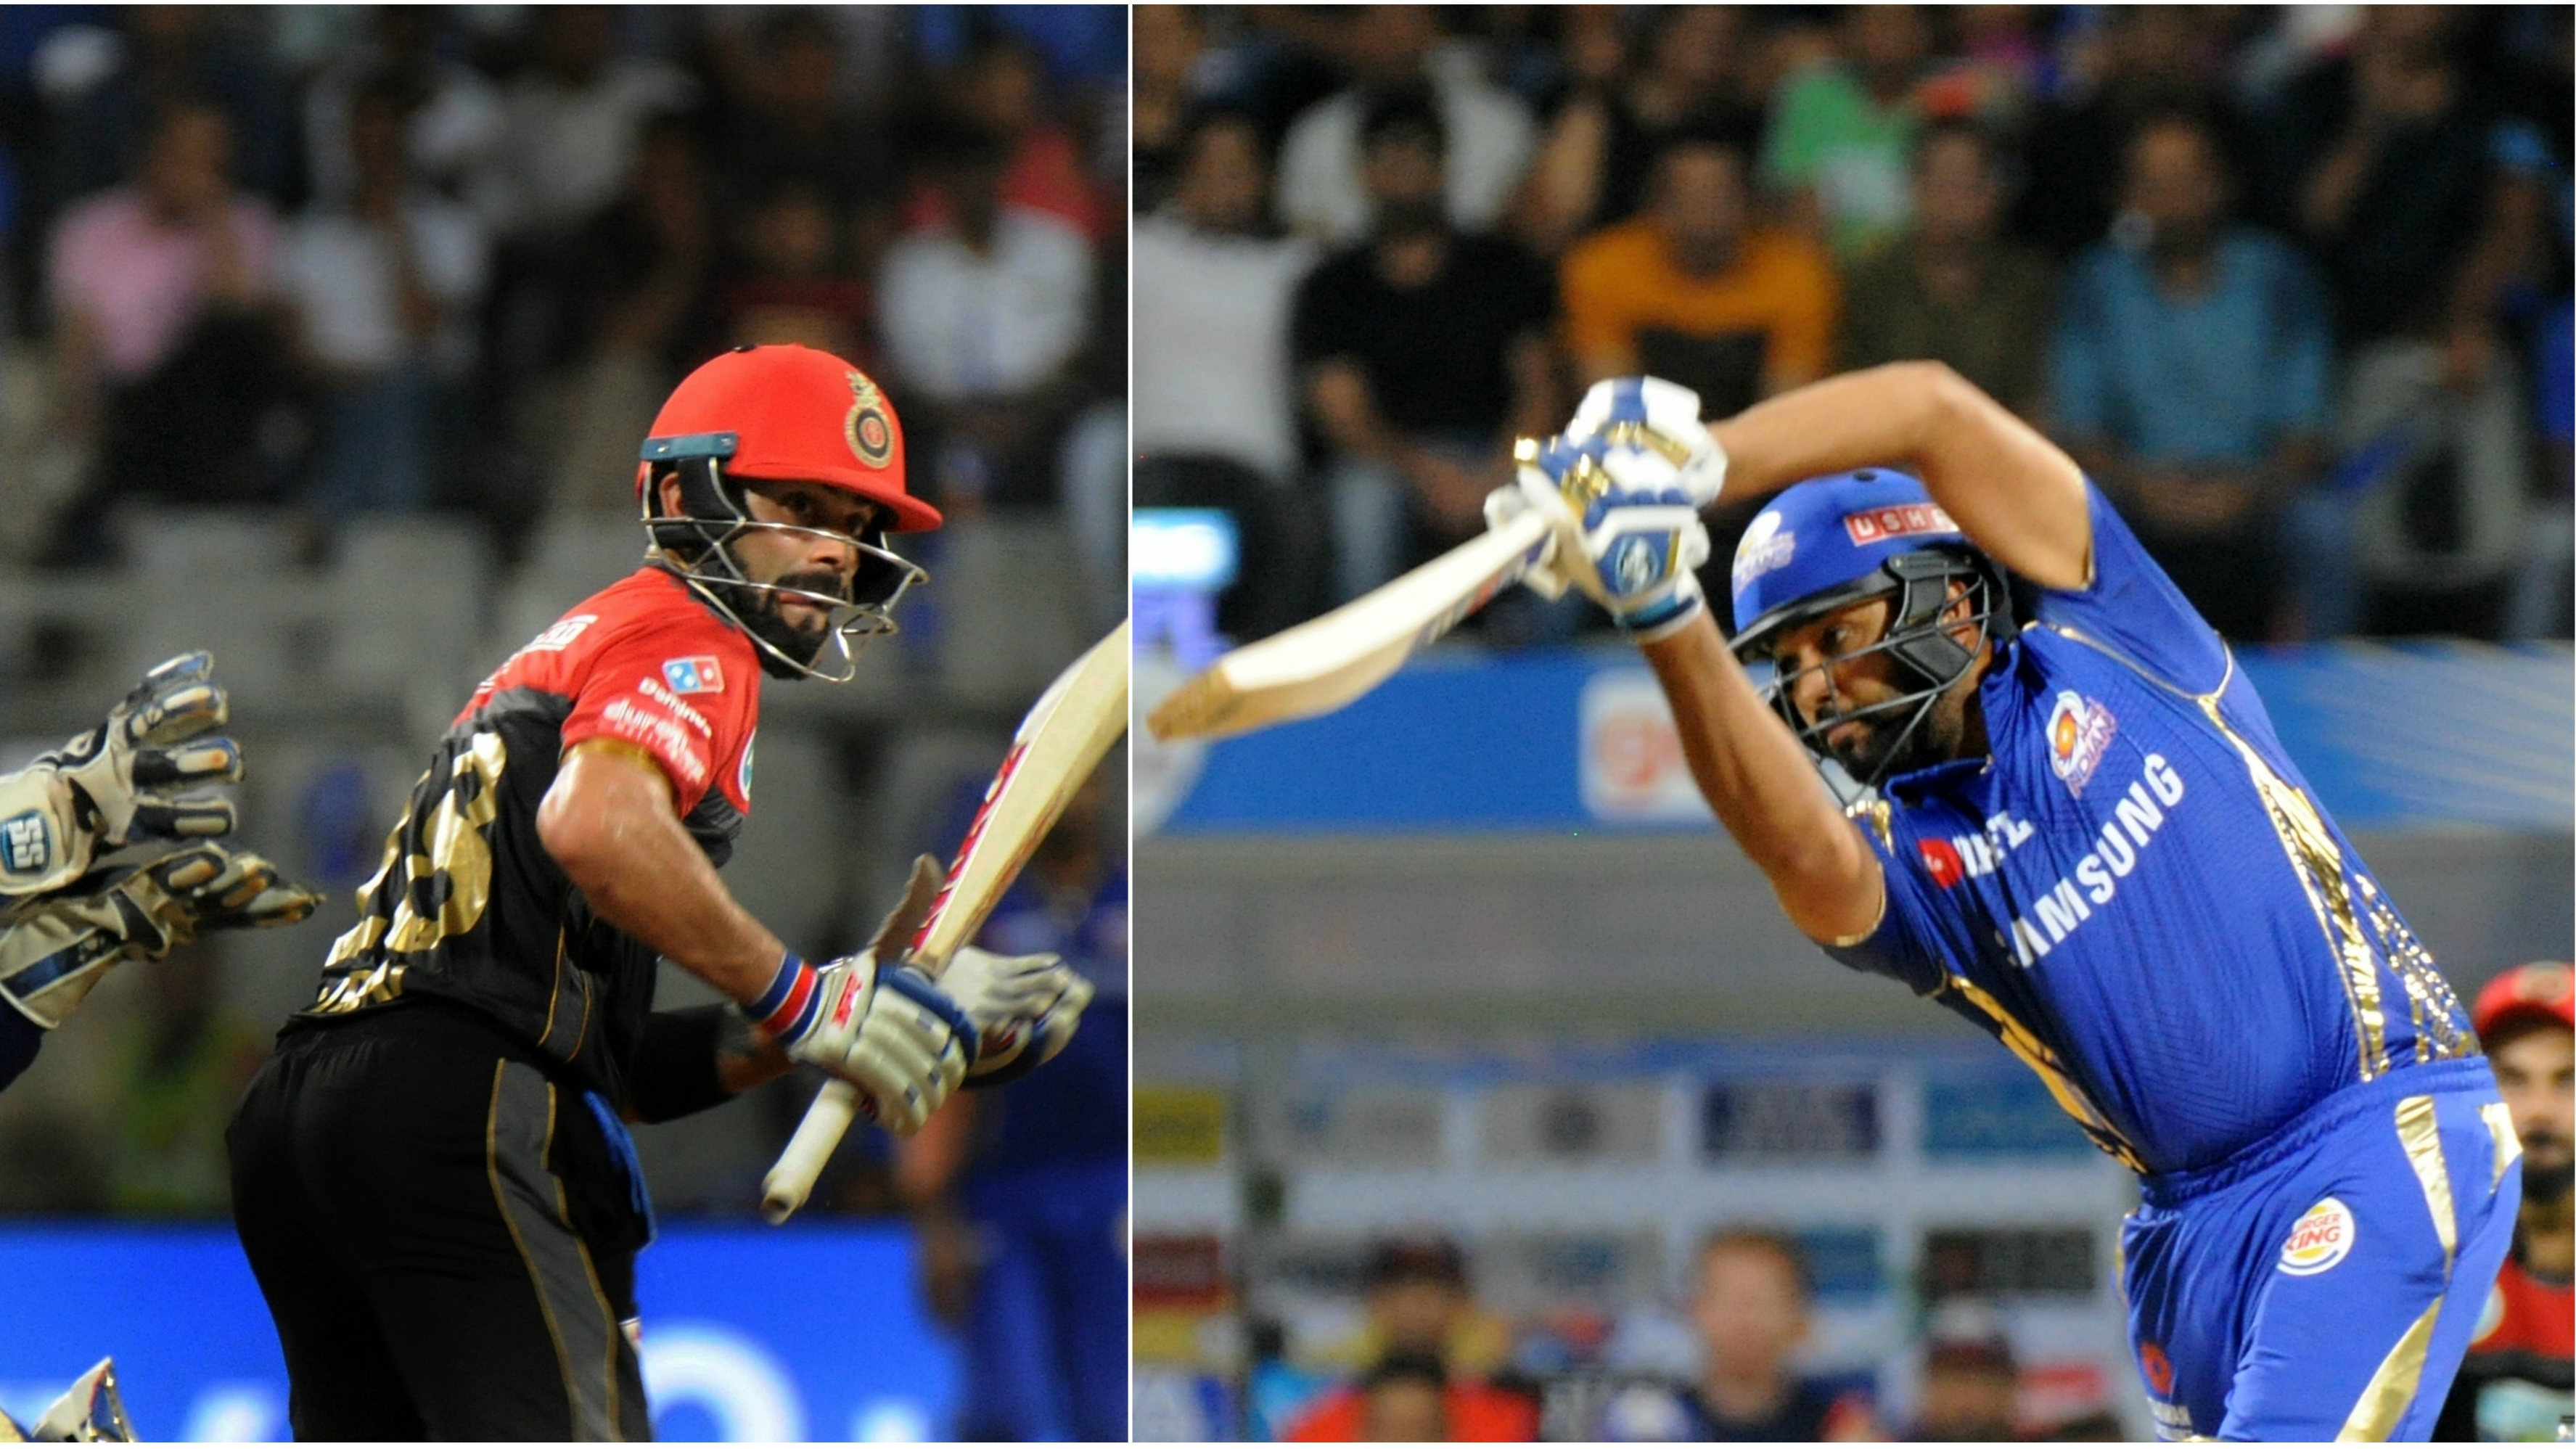 IPL 2018: MI vs RCB, Match 14: Twitter elated by the batsmanship of Kohli and Rohit in a befitting contest